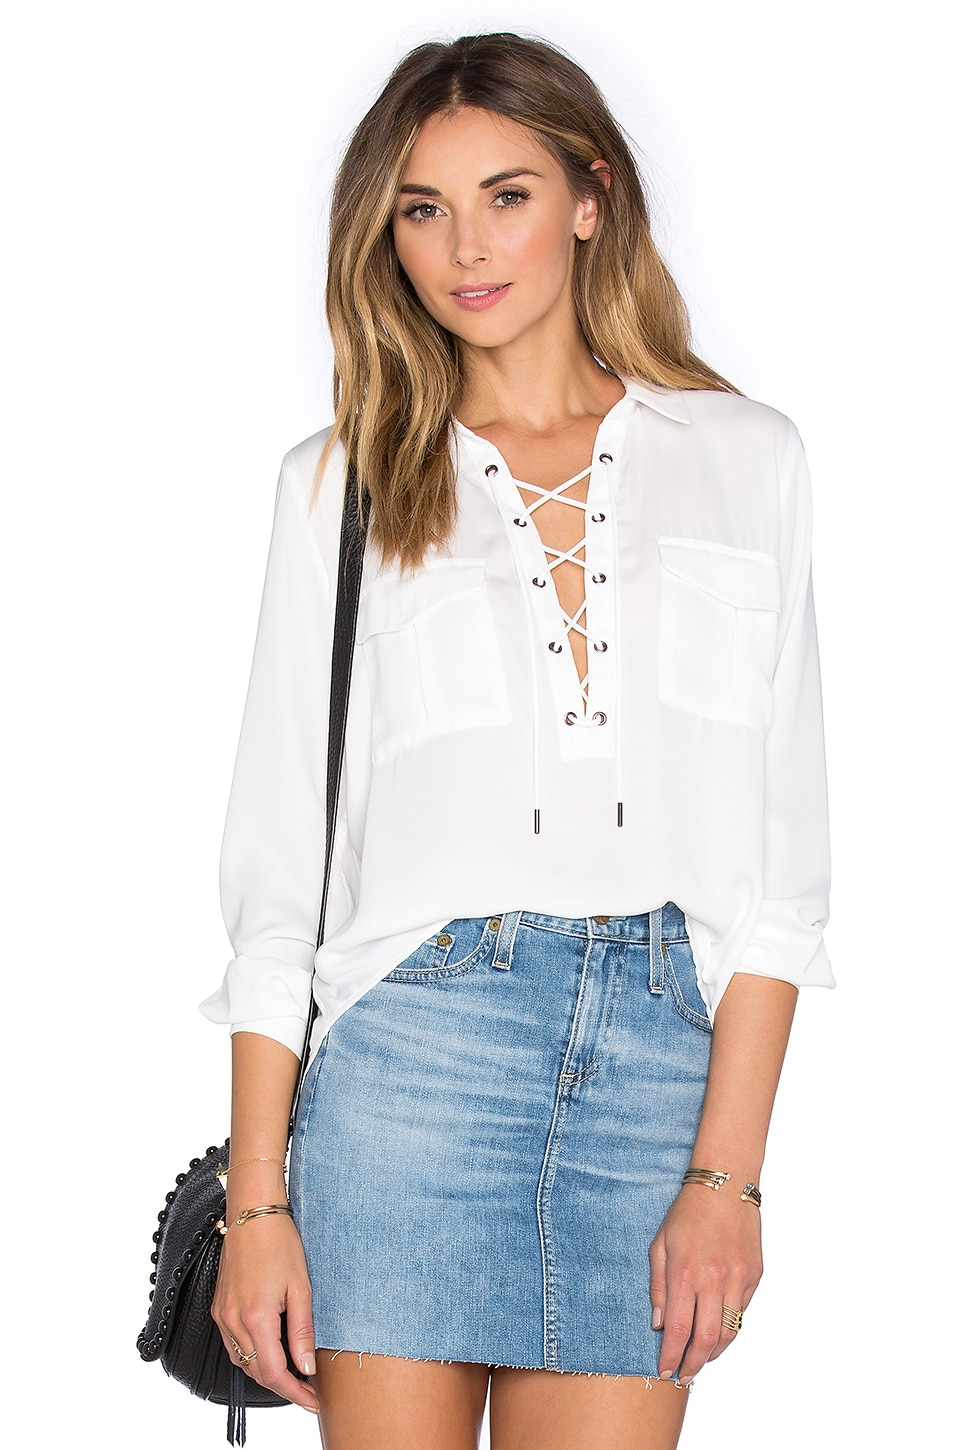 L'Academie x REVOLVE The Safari Blouse in White